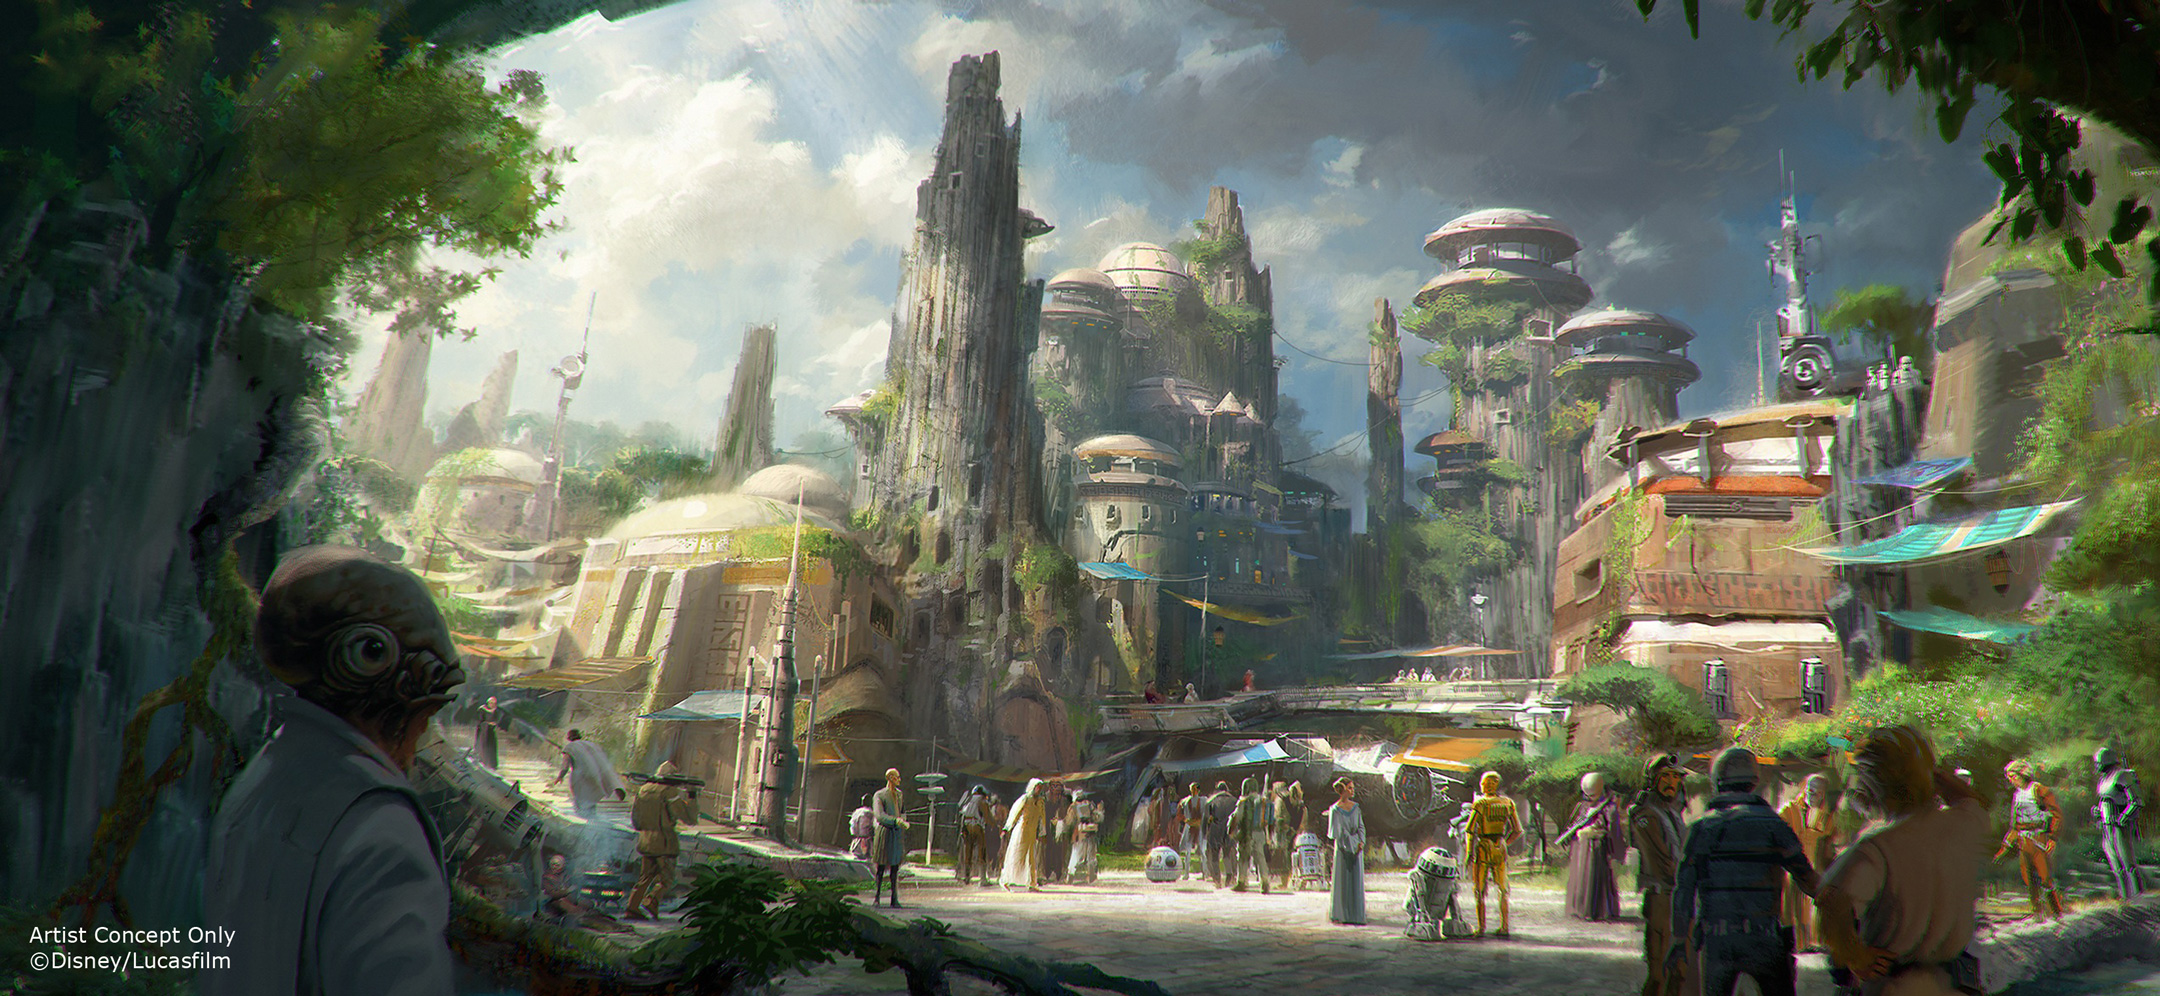 Star_Wars_Disney_Theme_Park_D23_2015_01.